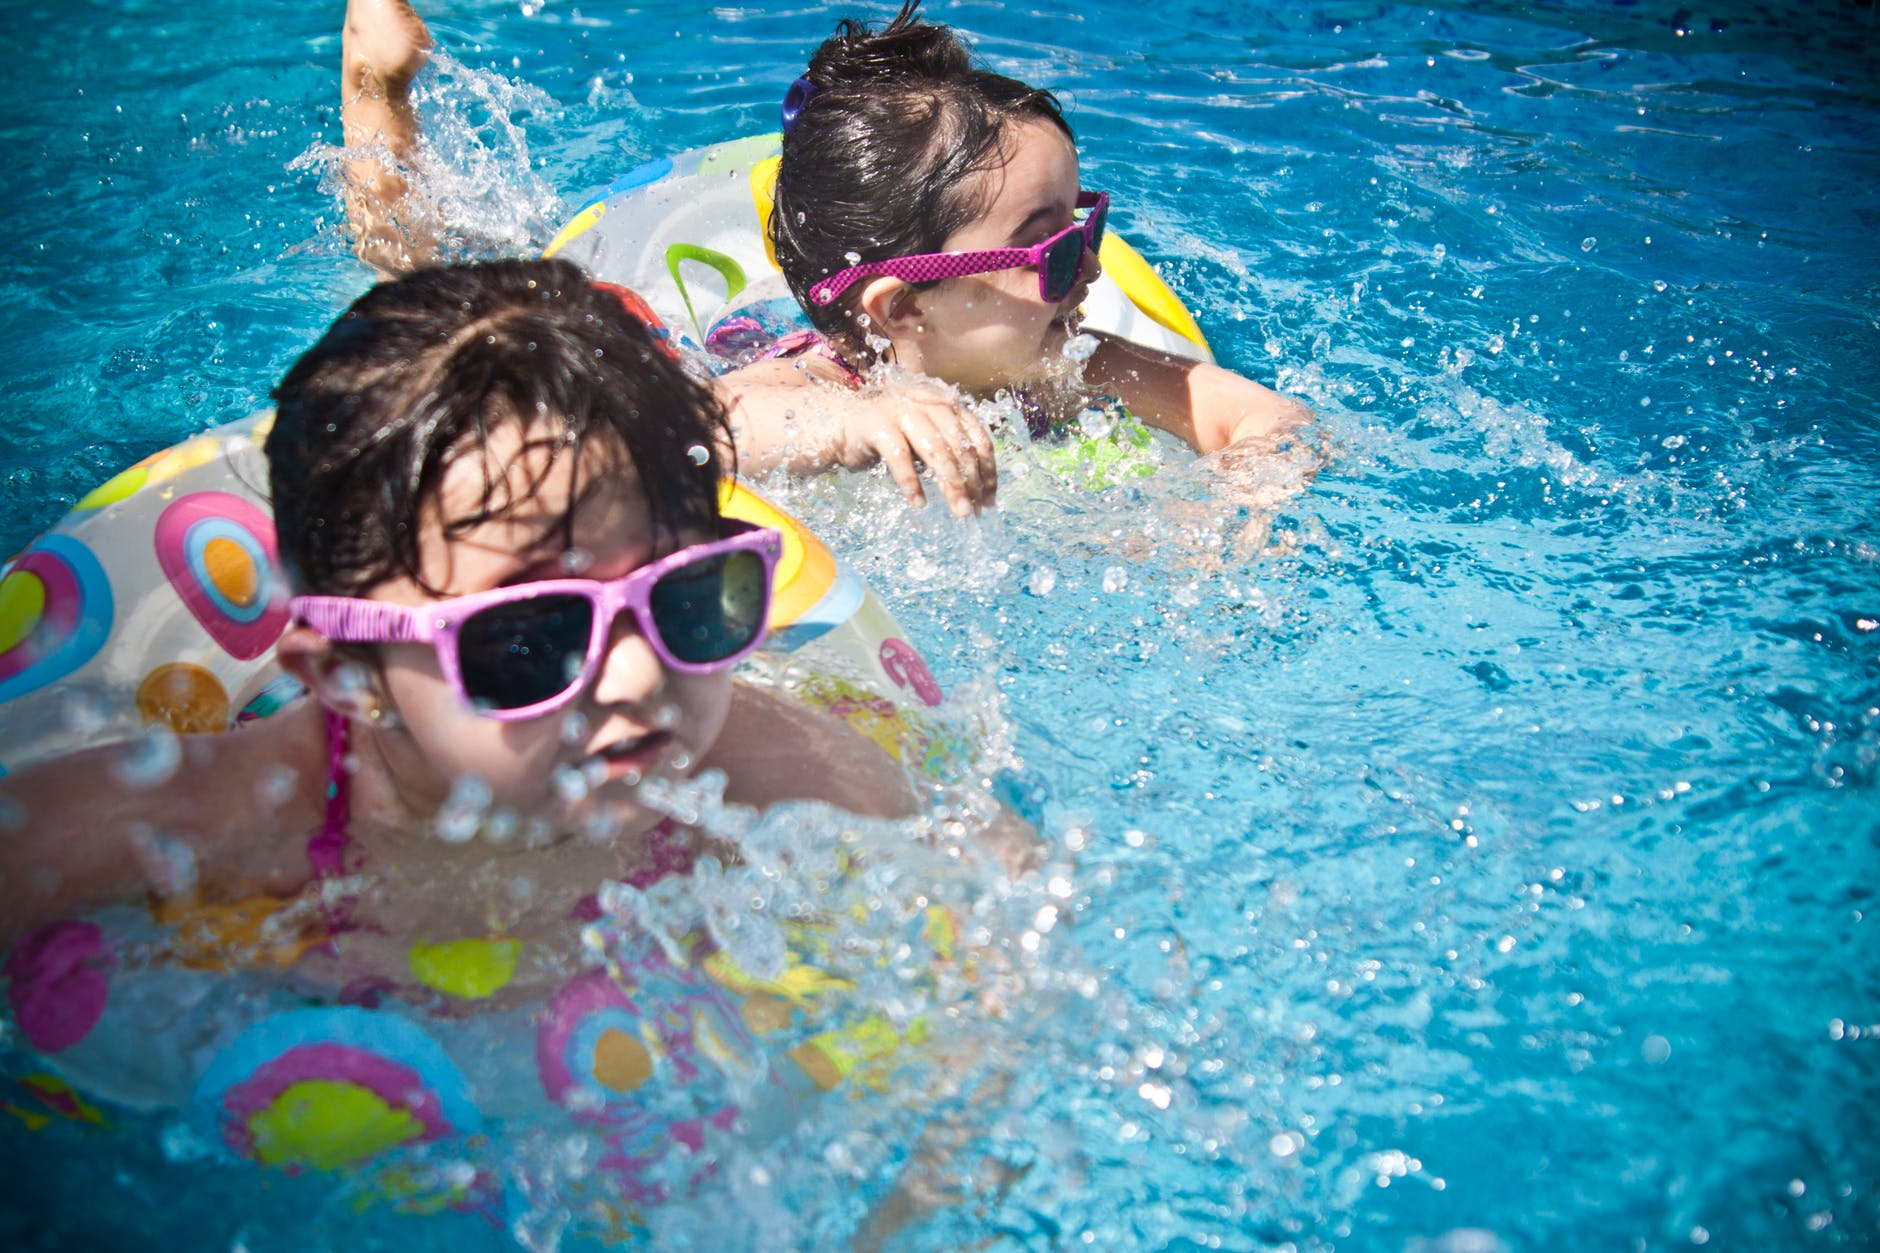 sunglasses girl swimming pool swimming